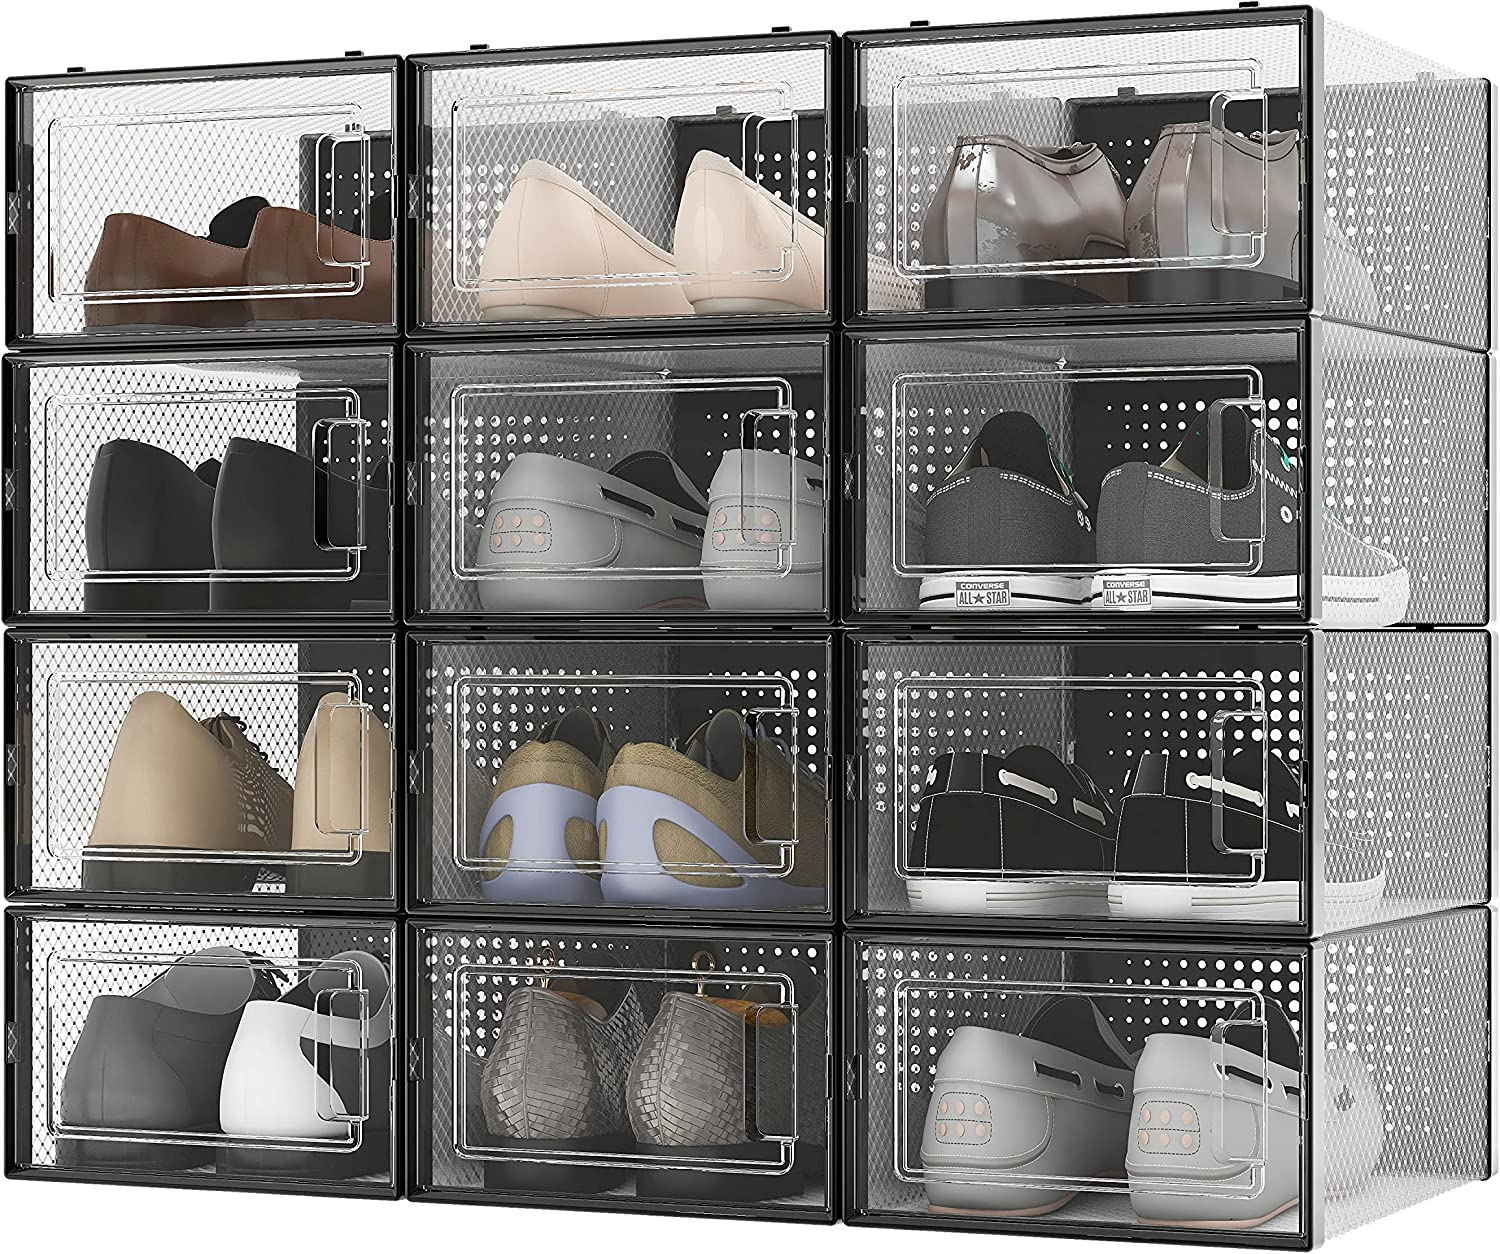 RISETEX Shoe Box Storage Containers 20 Pack,Drop Front Shoe Boxes Clear  Plastic Stackable with Lids,Shoe Containers,Foldable Shoe Storage Organizer  ...